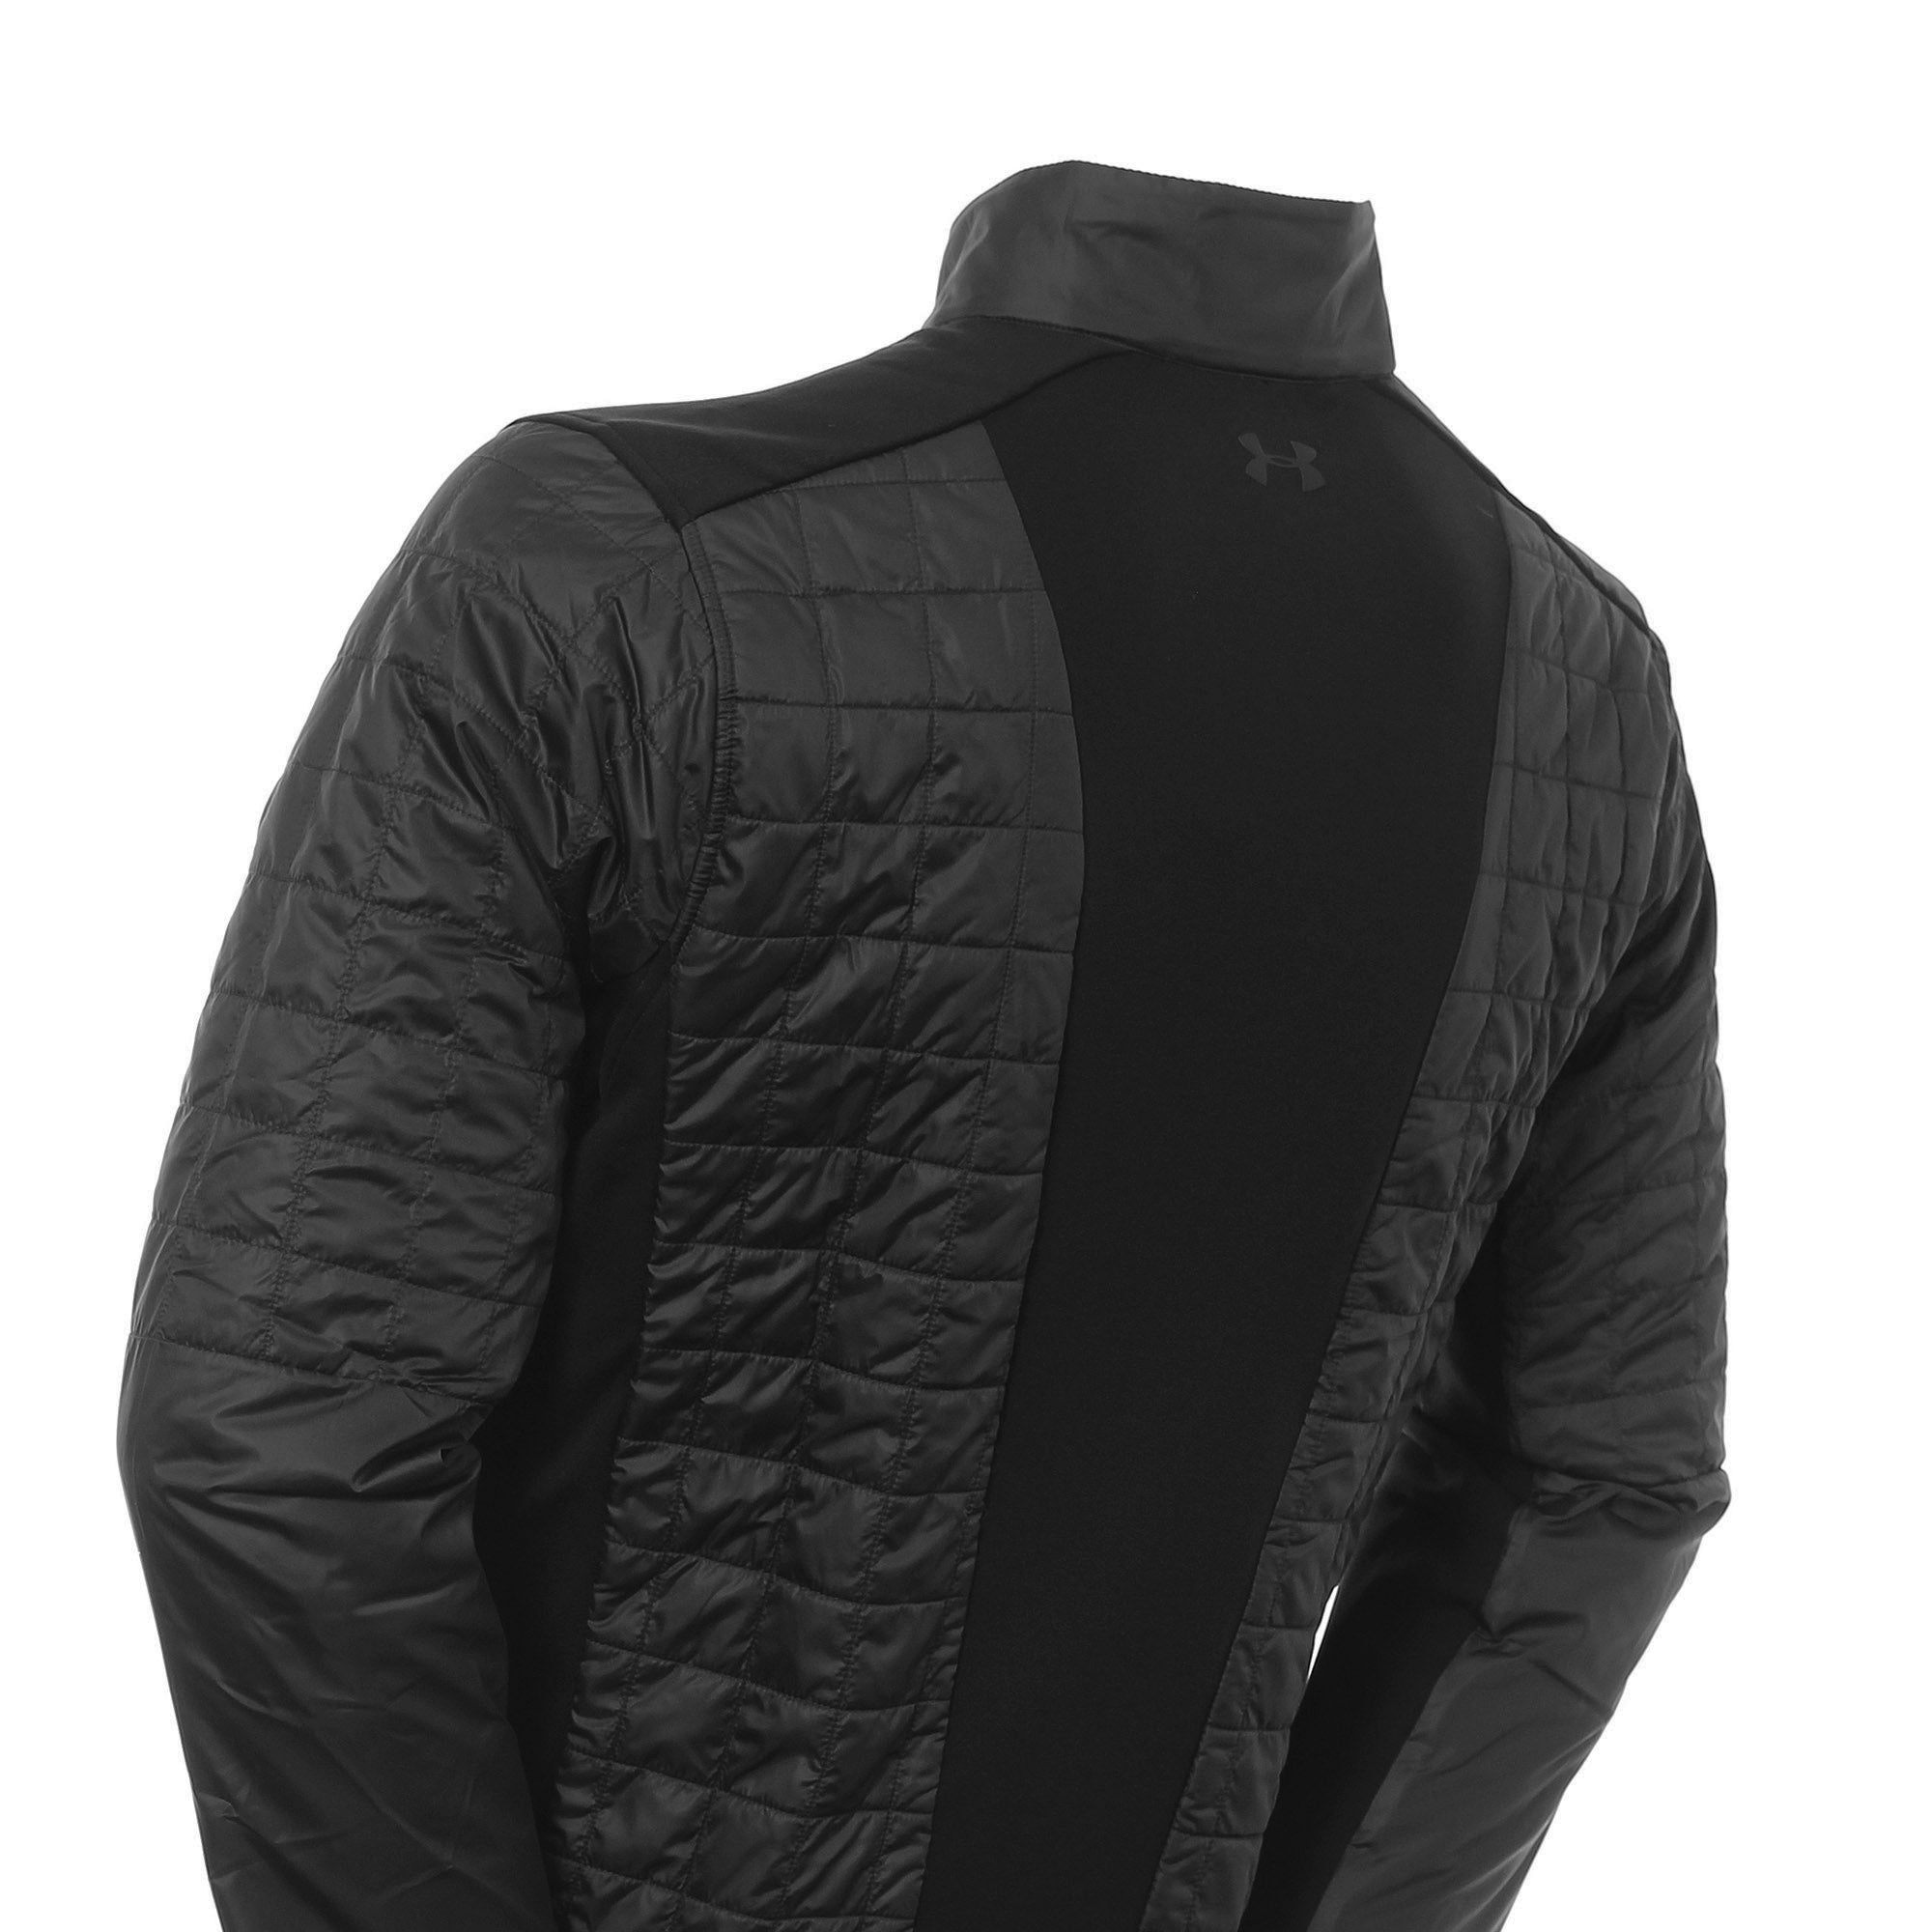 Under Armour Golf Storm Insulated Jacket 1317359